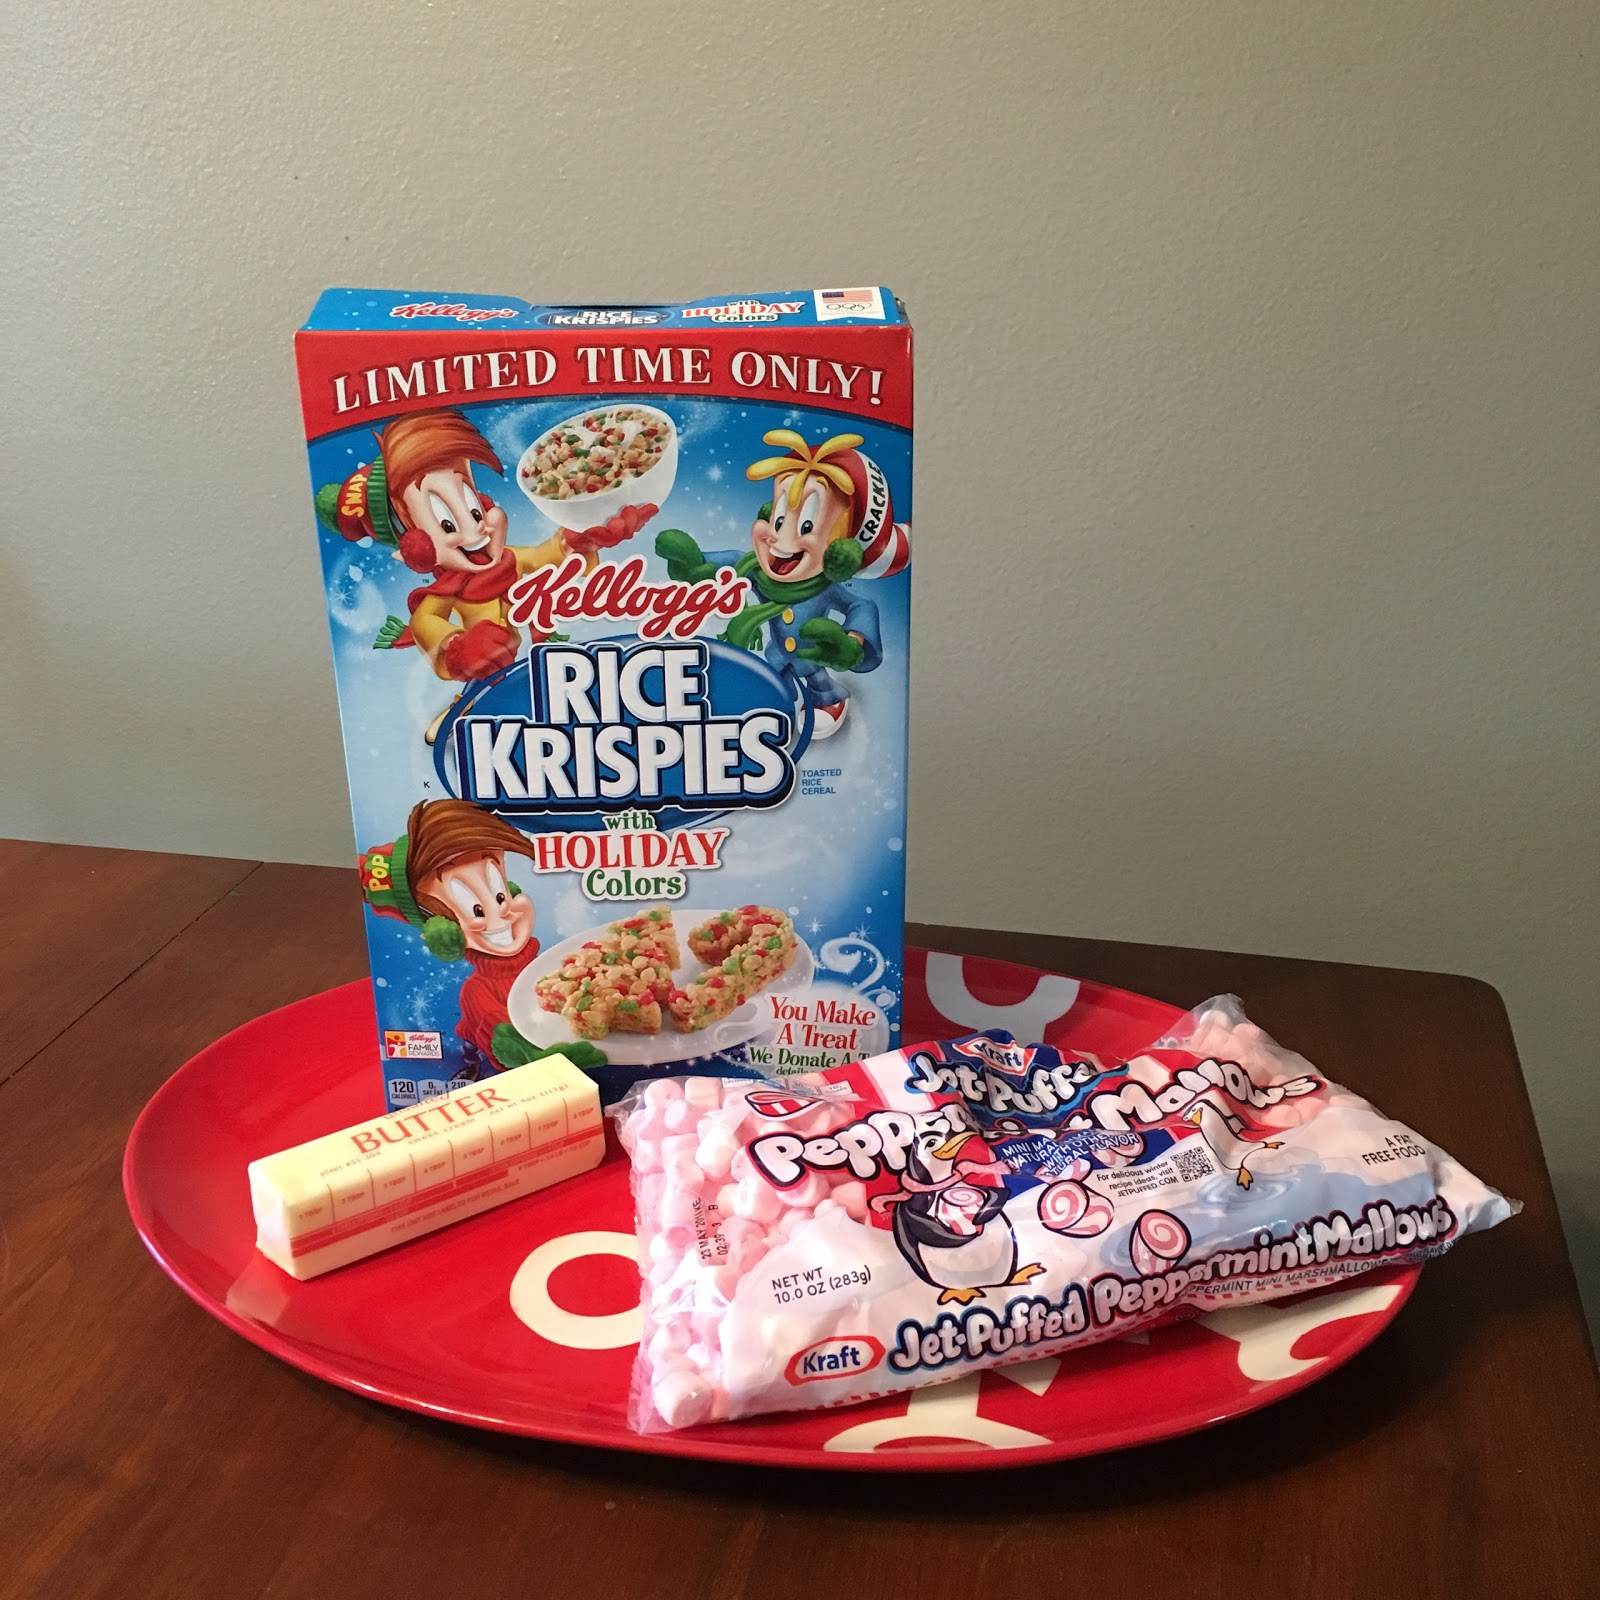 i was perusing the grocery store a couple weeks ago and stumbled upon holiday color rice krispies and peppermint marshmallows